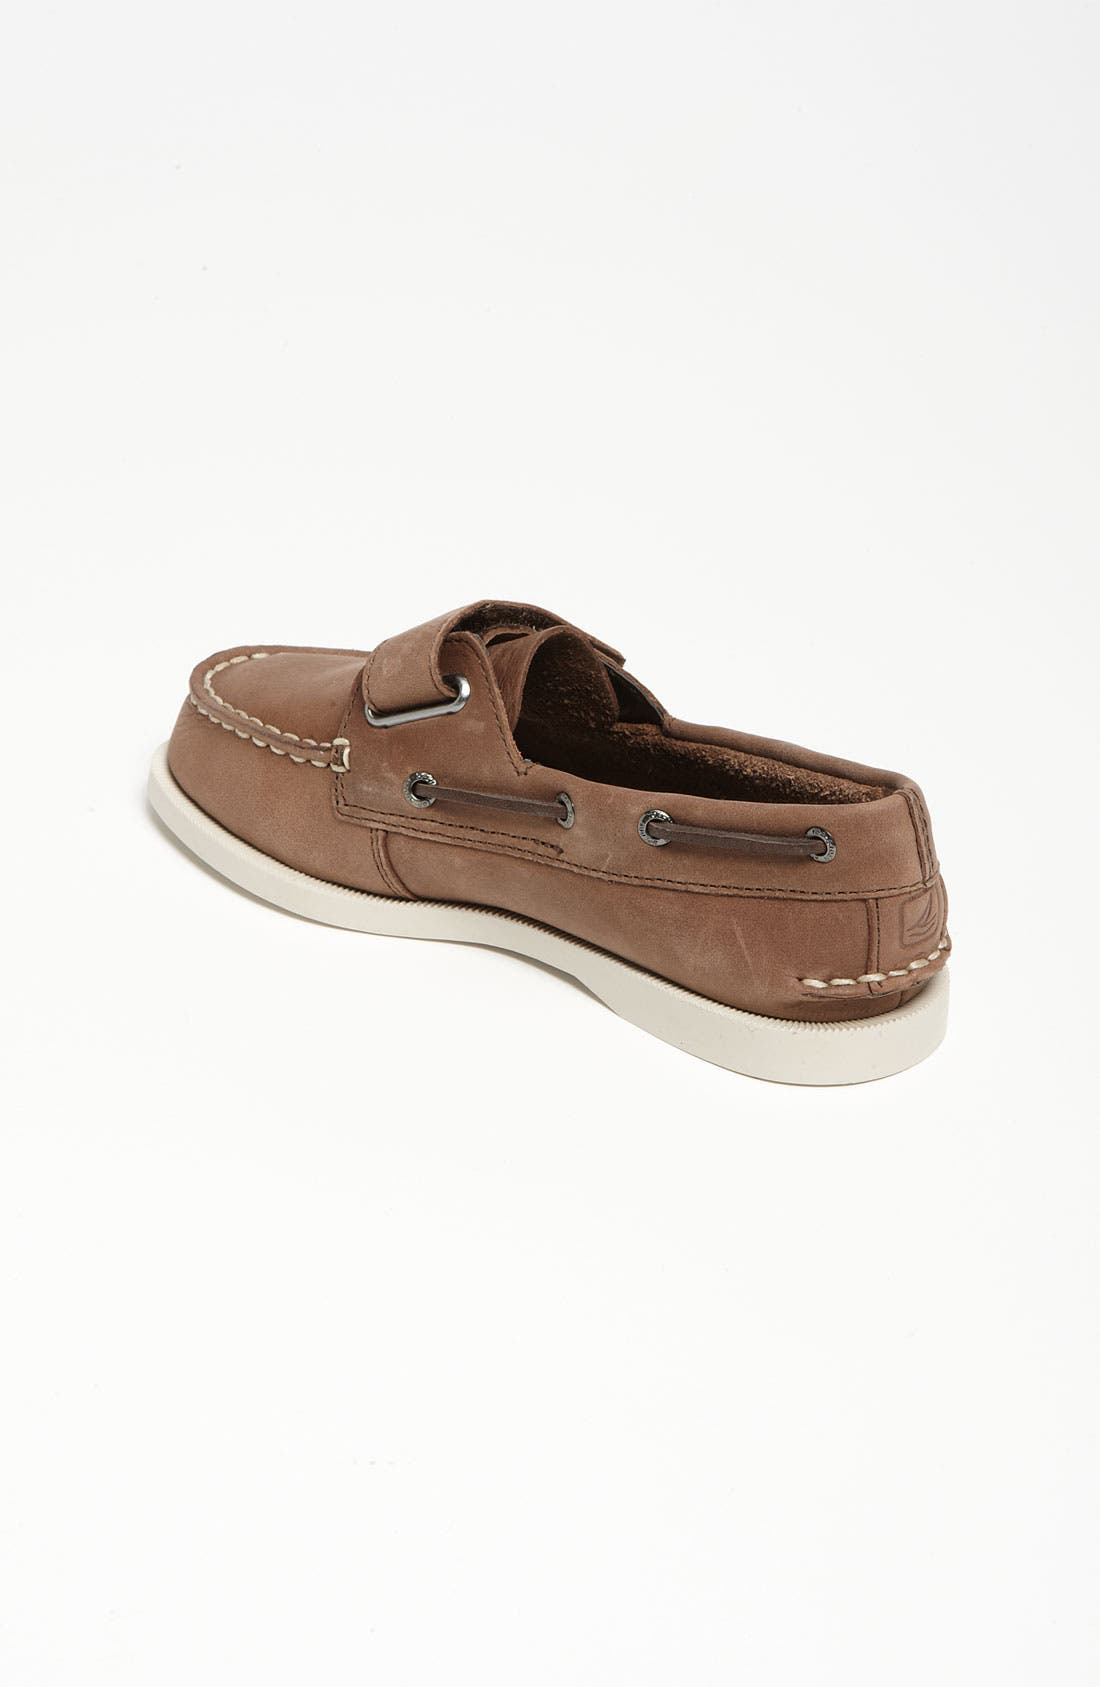 SPERRY KIDS, Sperry Top-Sider<sup>®</sup> Kids 'Authentic Original' Boat Shoe, Alternate thumbnail 3, color, BROWN